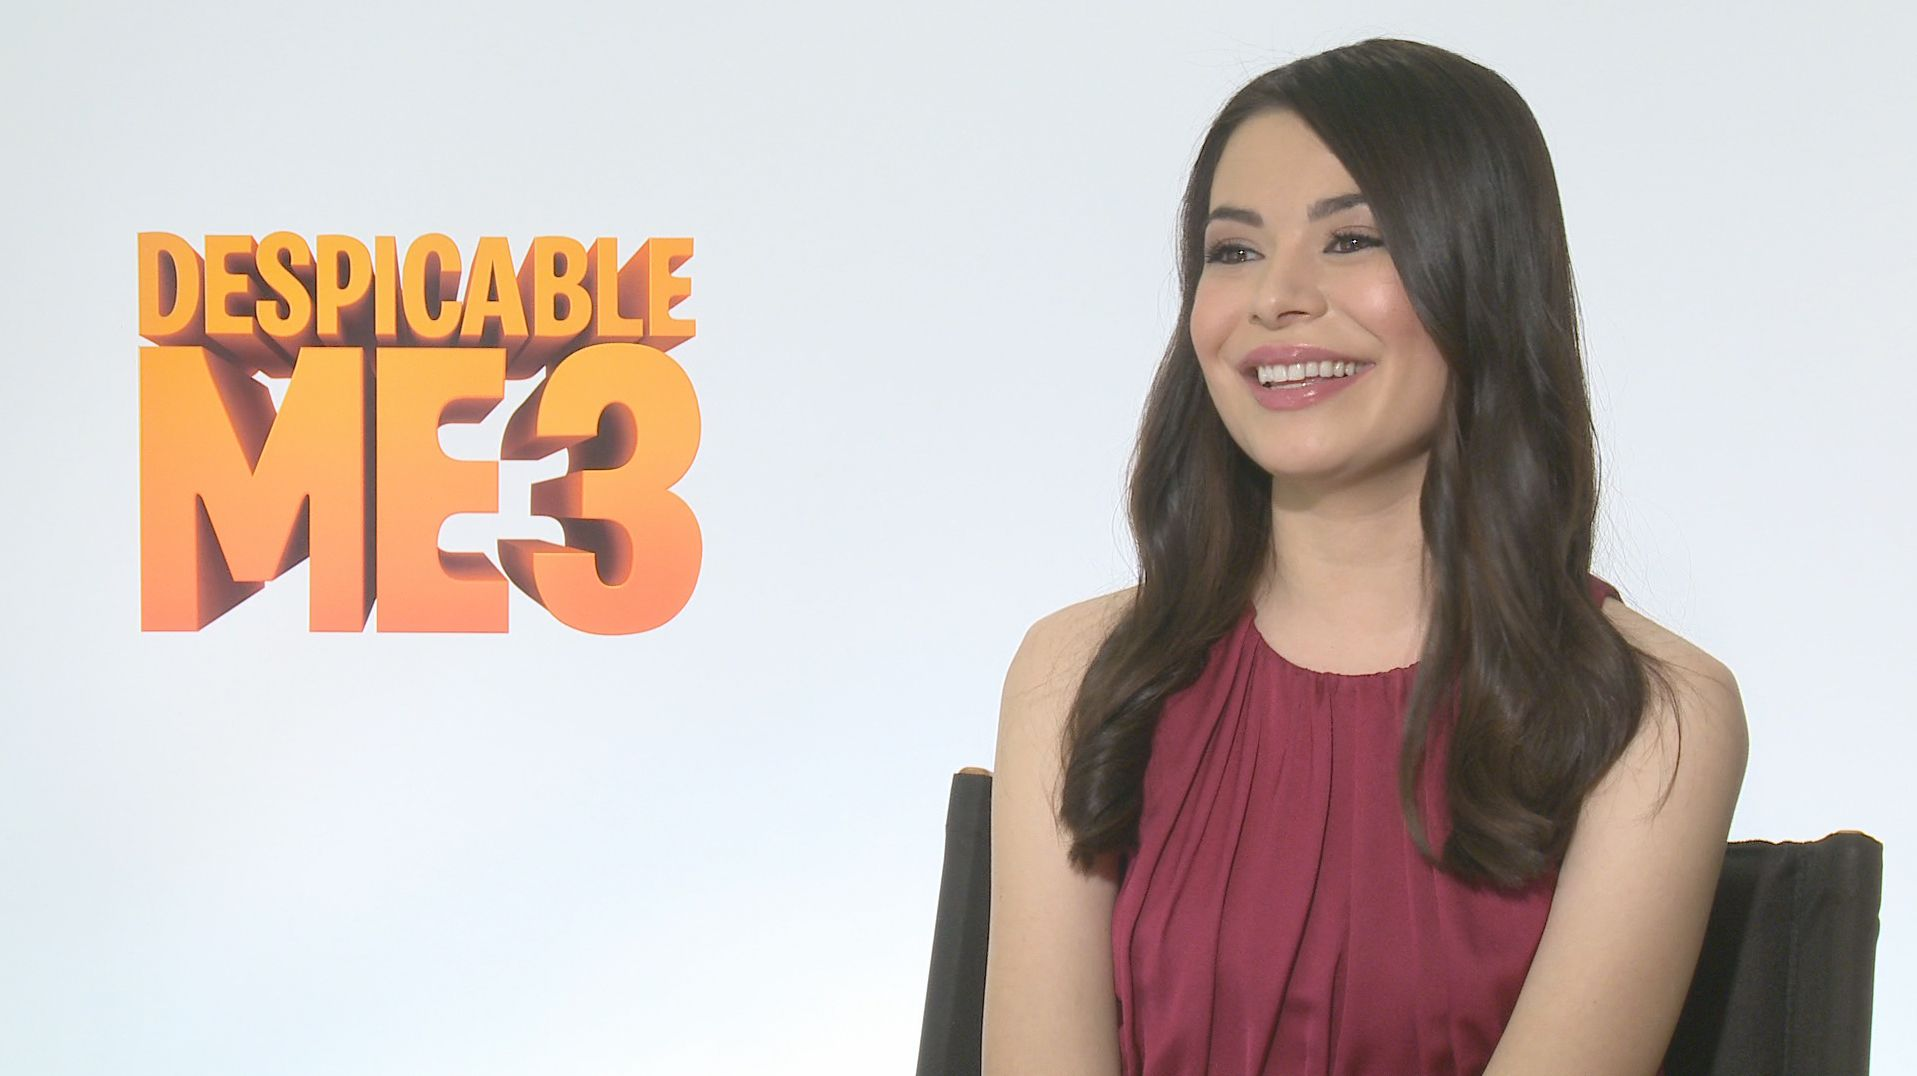 Miranda Cosgrove on Growing Up in Despicable Me 3 | Collider Miranda Cosgrove Despicable Me